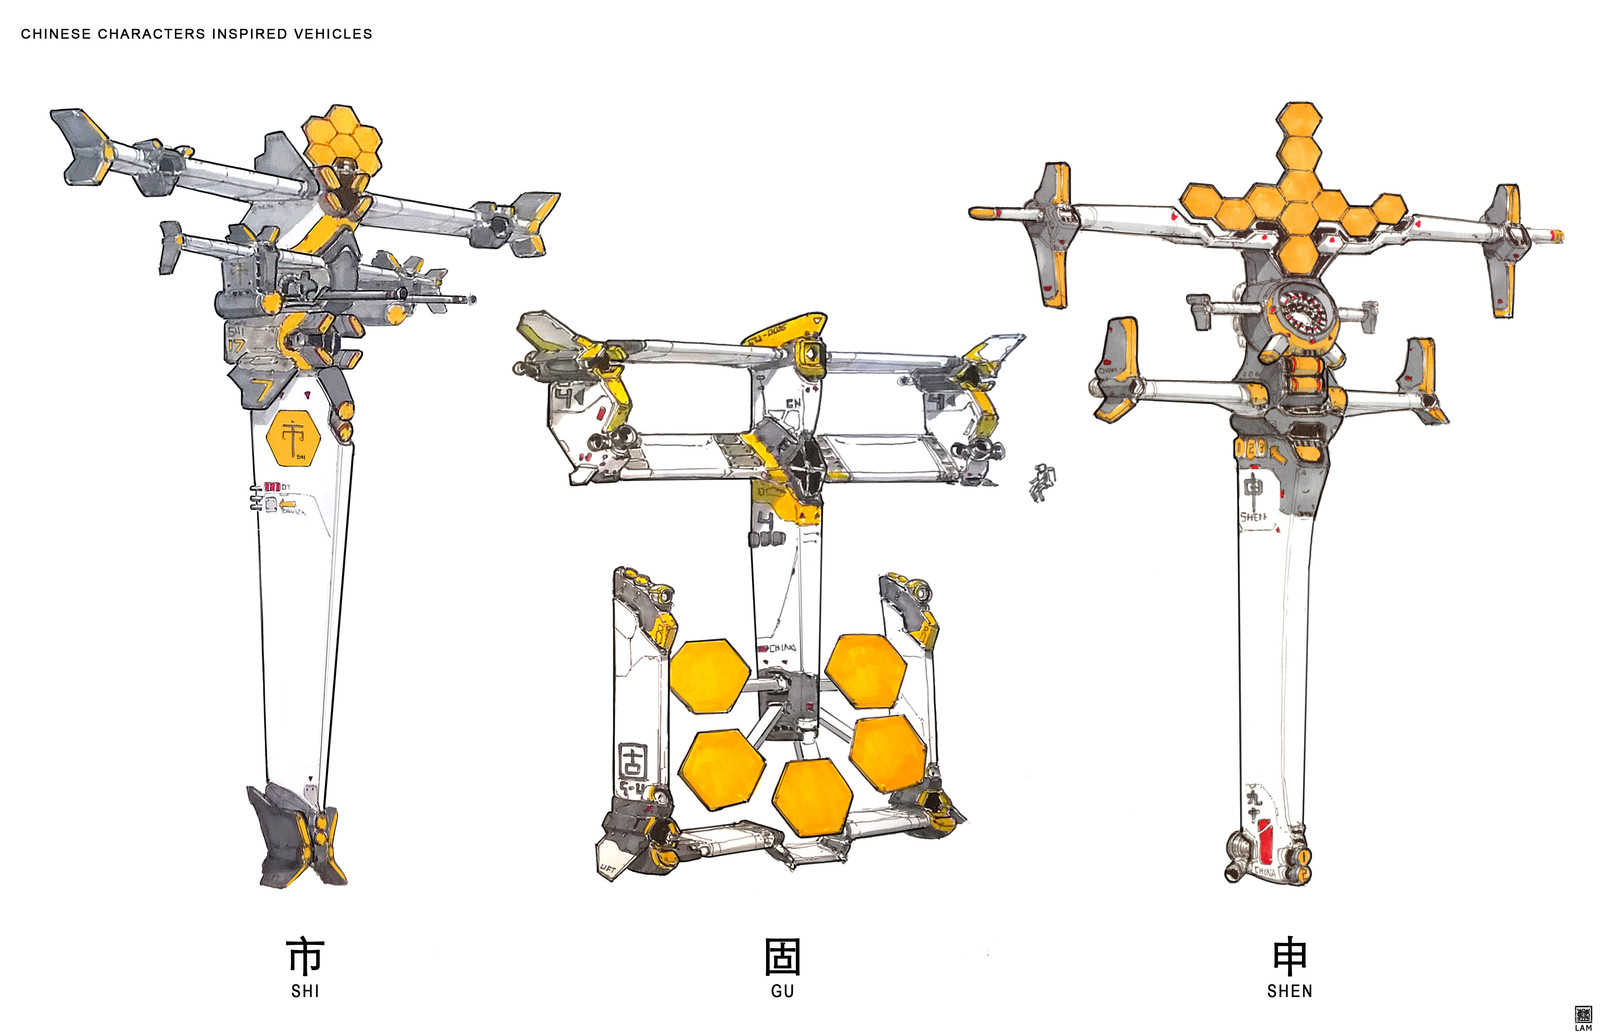 Hanzi Inspired Vehicles